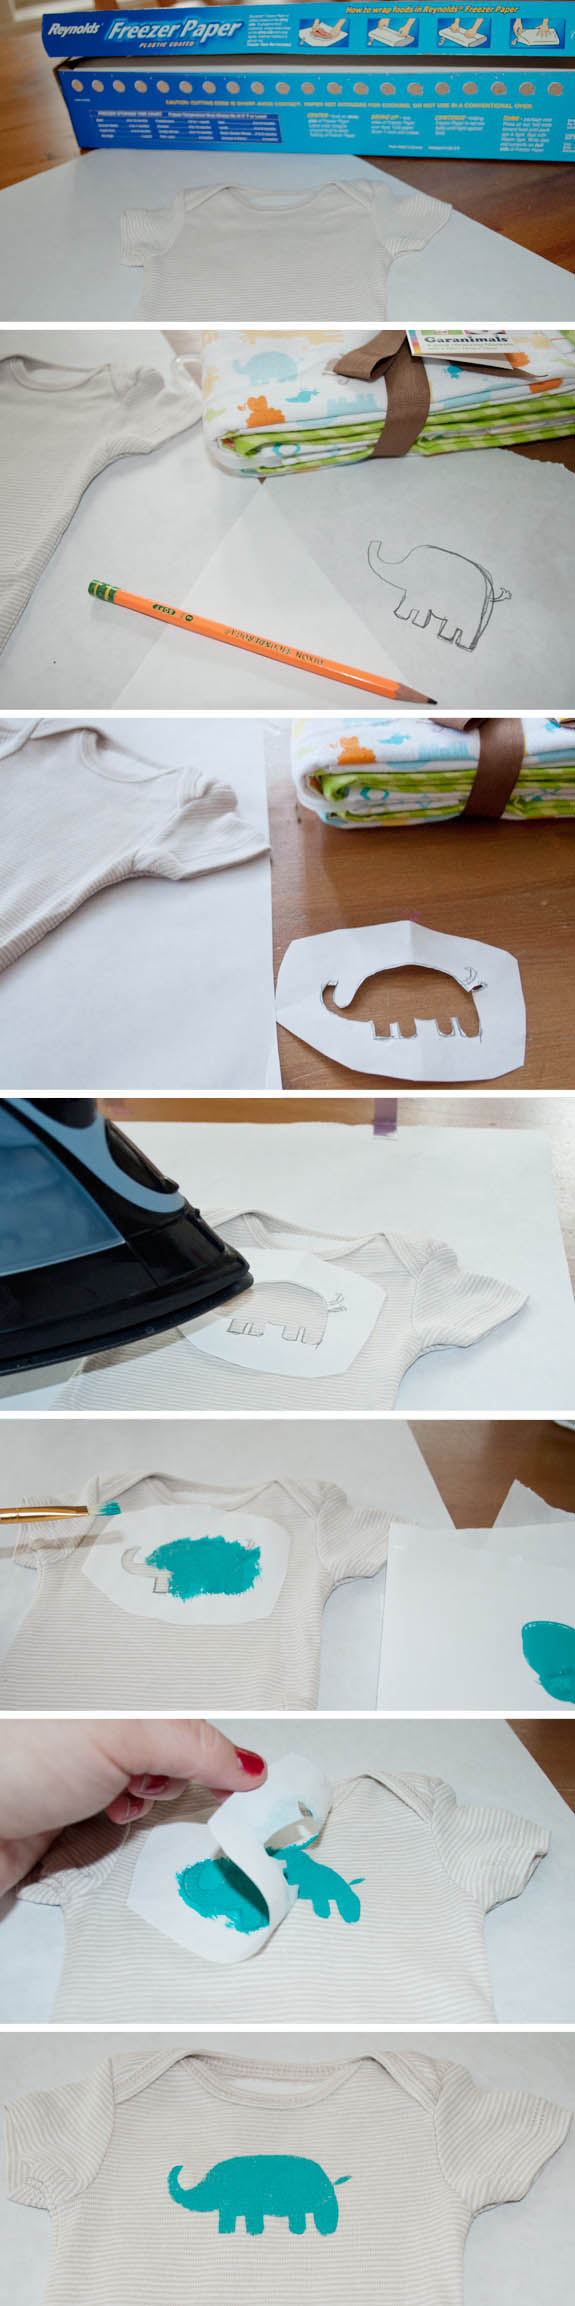 Easy Freezer Paper Stenciling. A great way to personalize baby gifts or make custom tshirts!